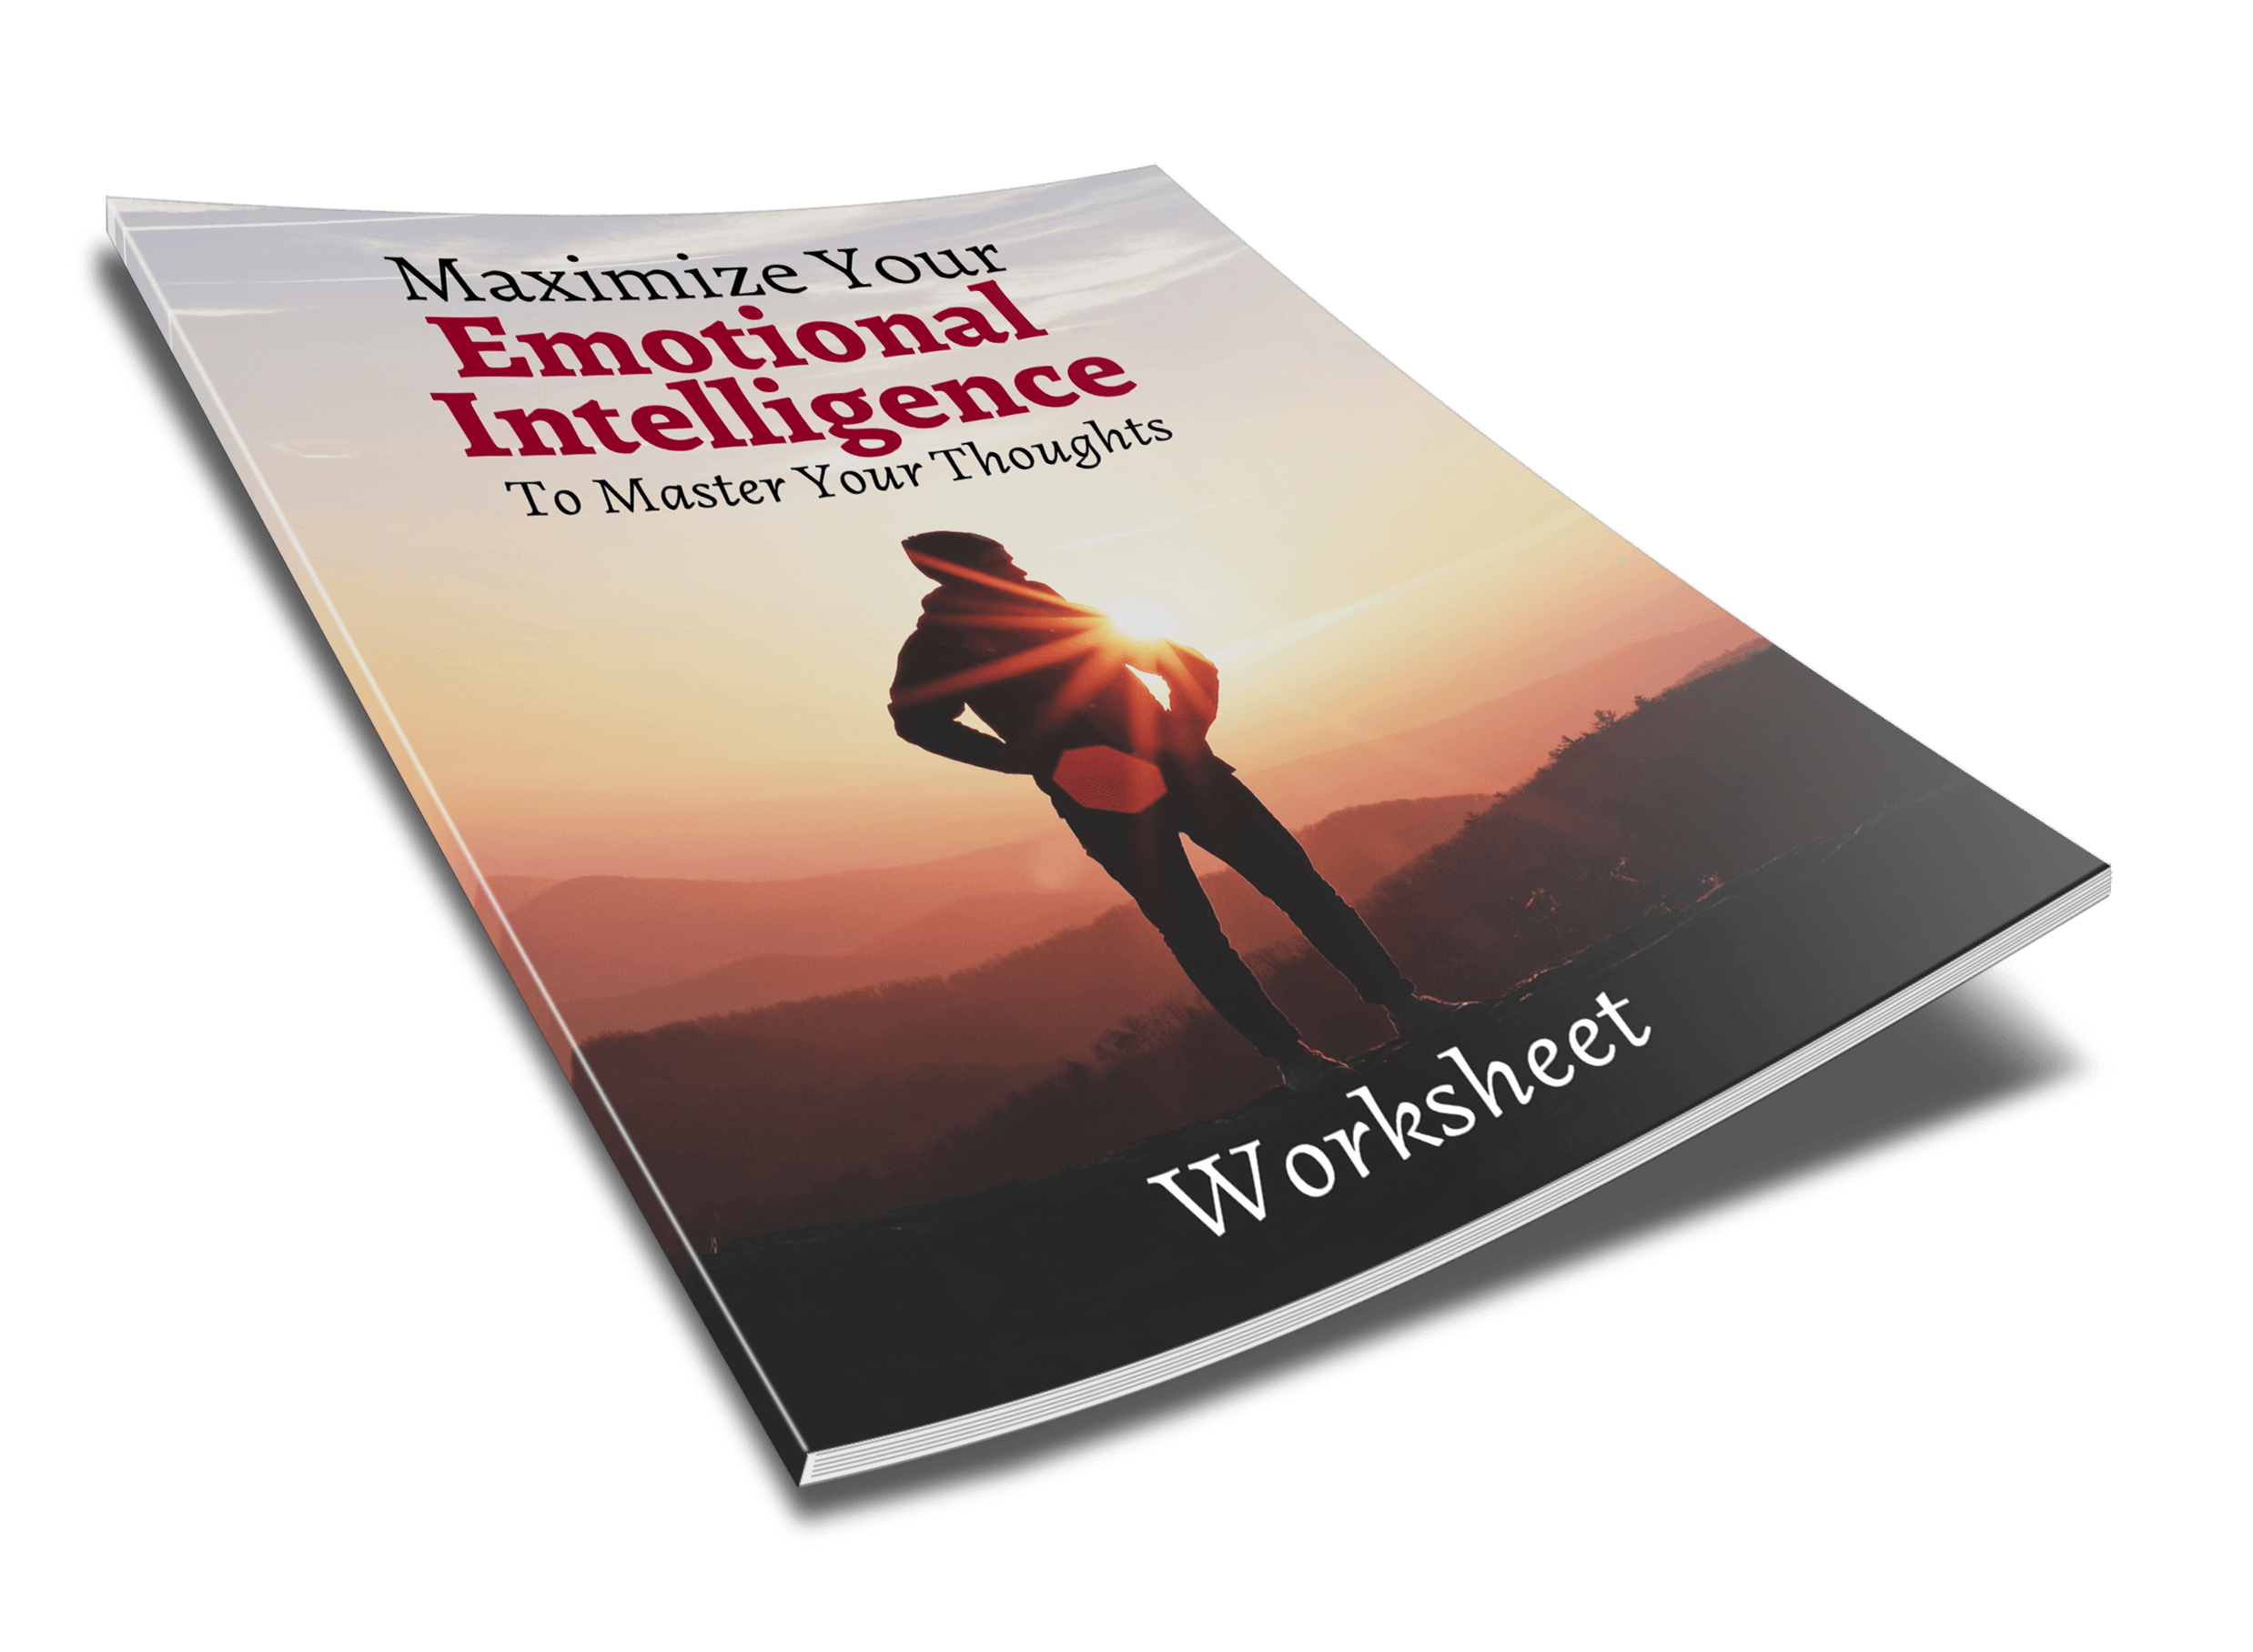 Maximize Your Emotional Intelligence - And What To Do If The Bully Is Yours Inspirational Ebook